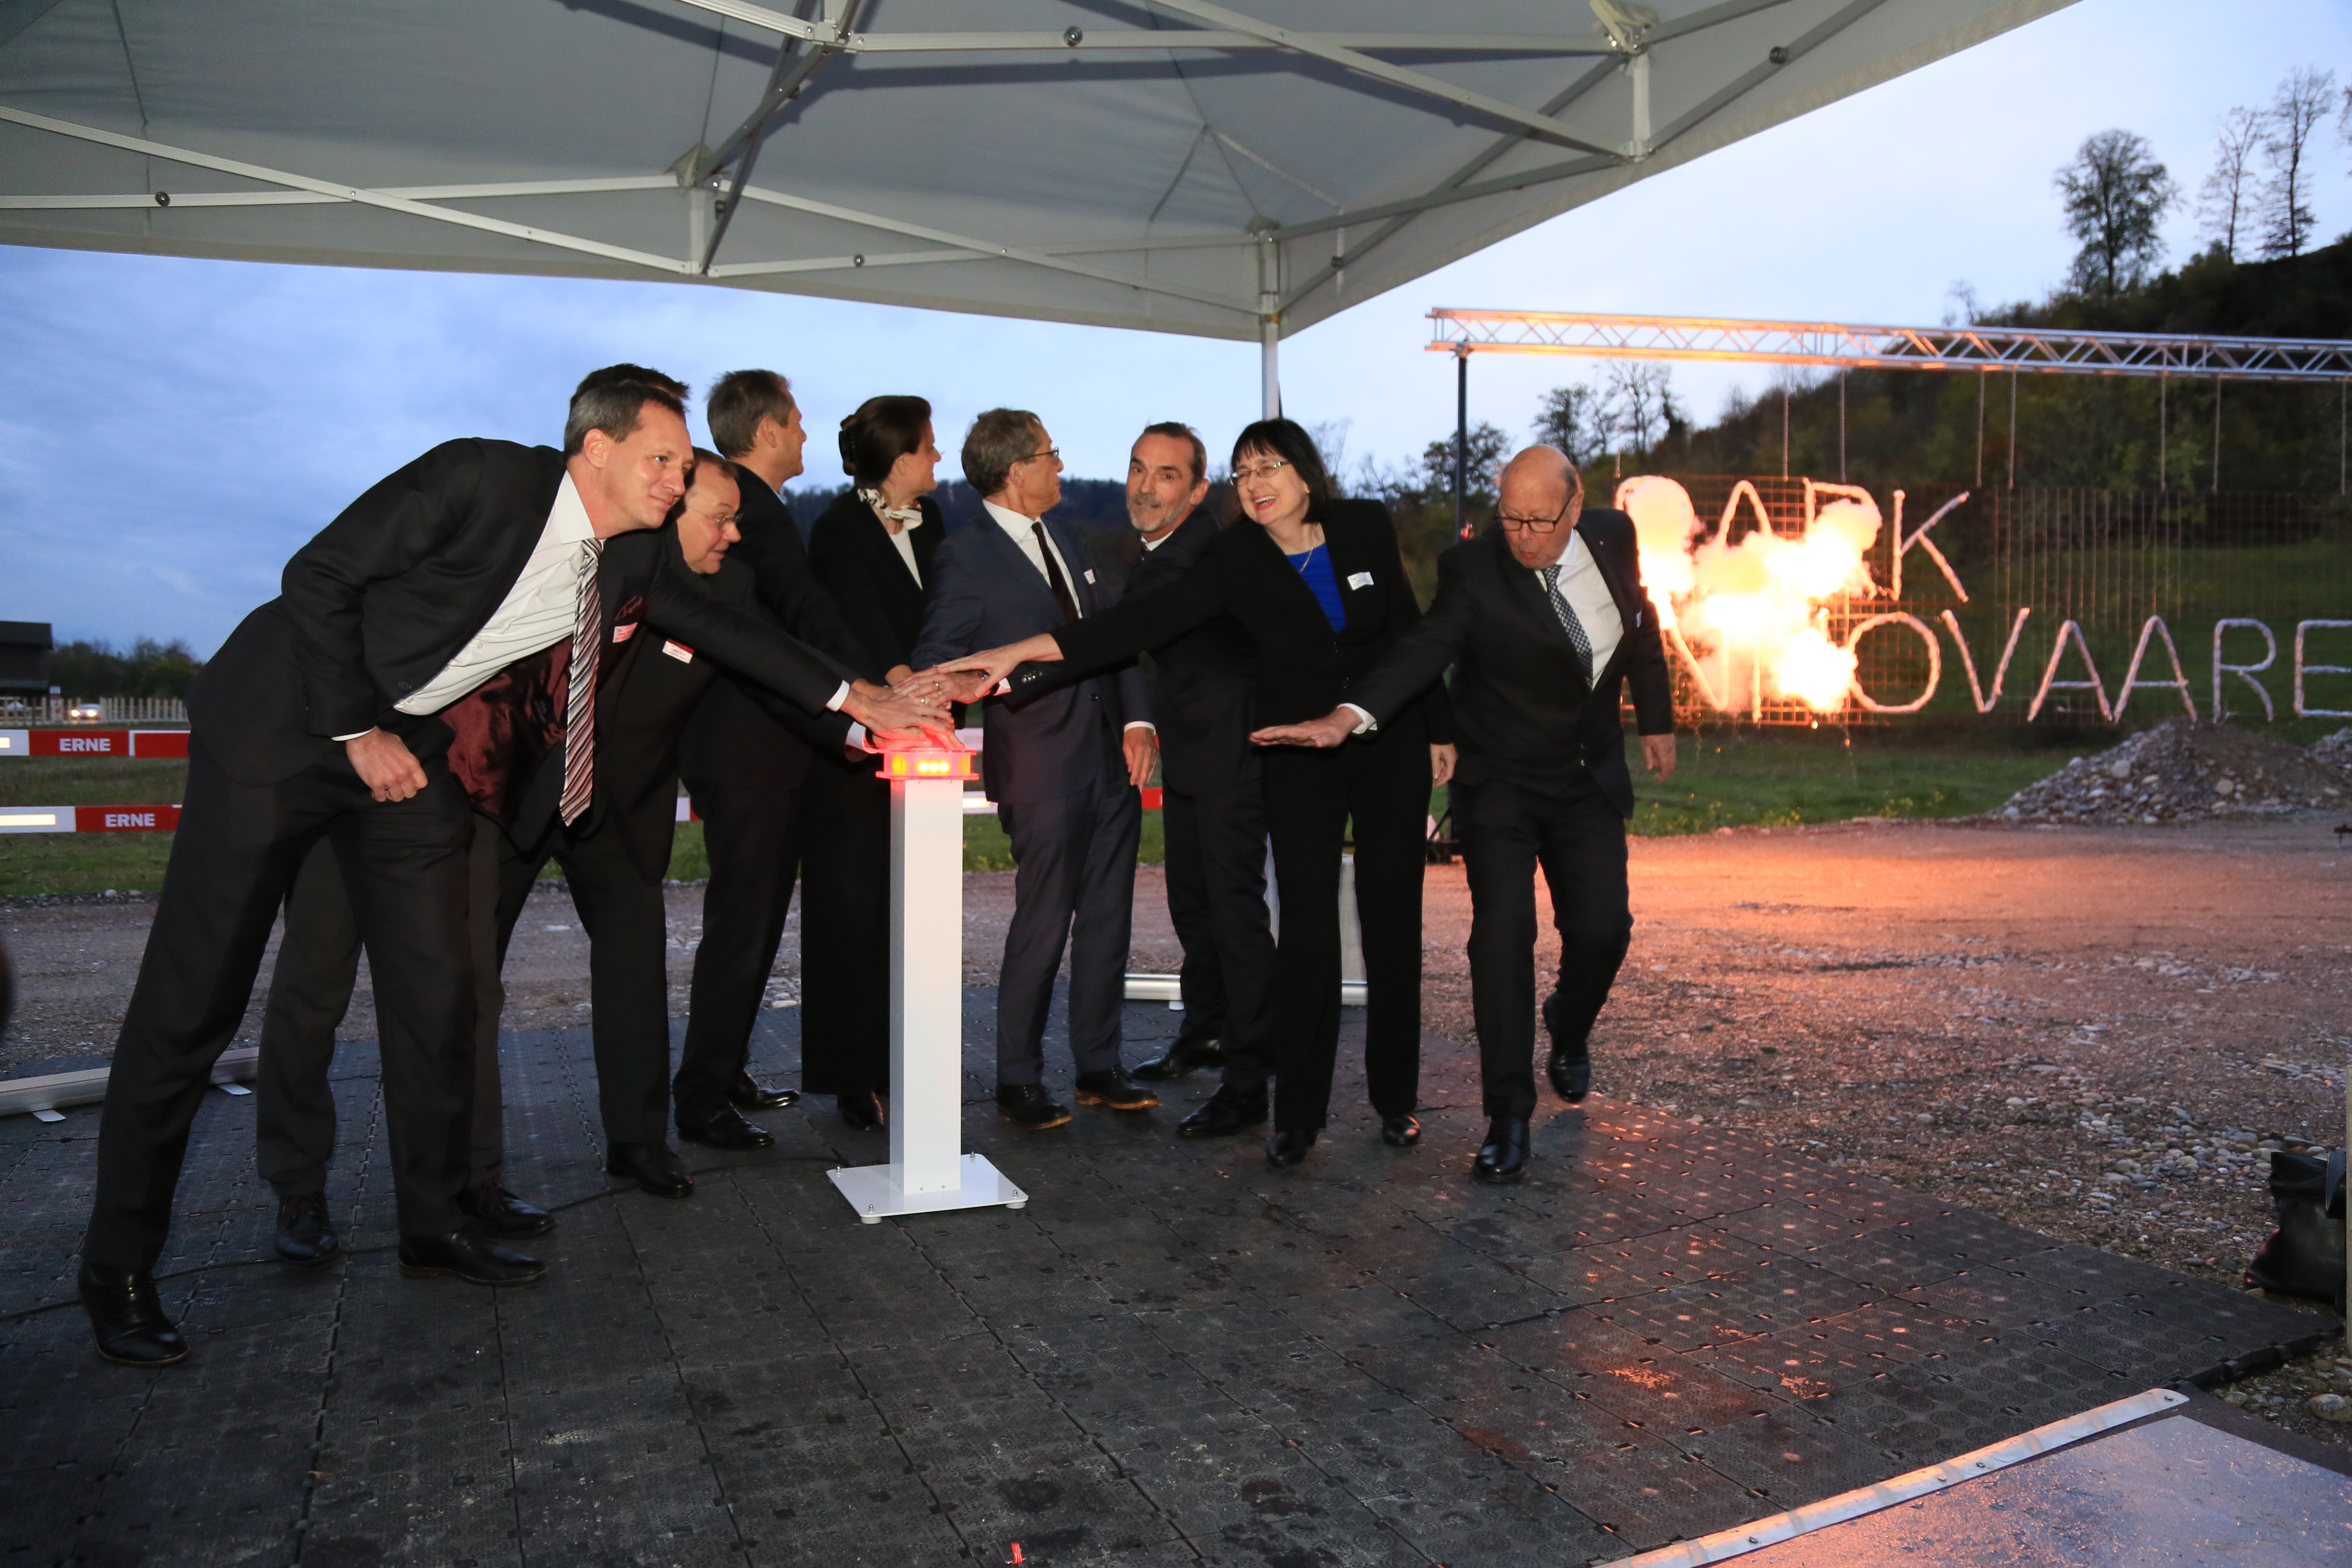 Lighting ceremony of the PARK INNOVAARE symbol & groundbreaking of the new innovation campus.